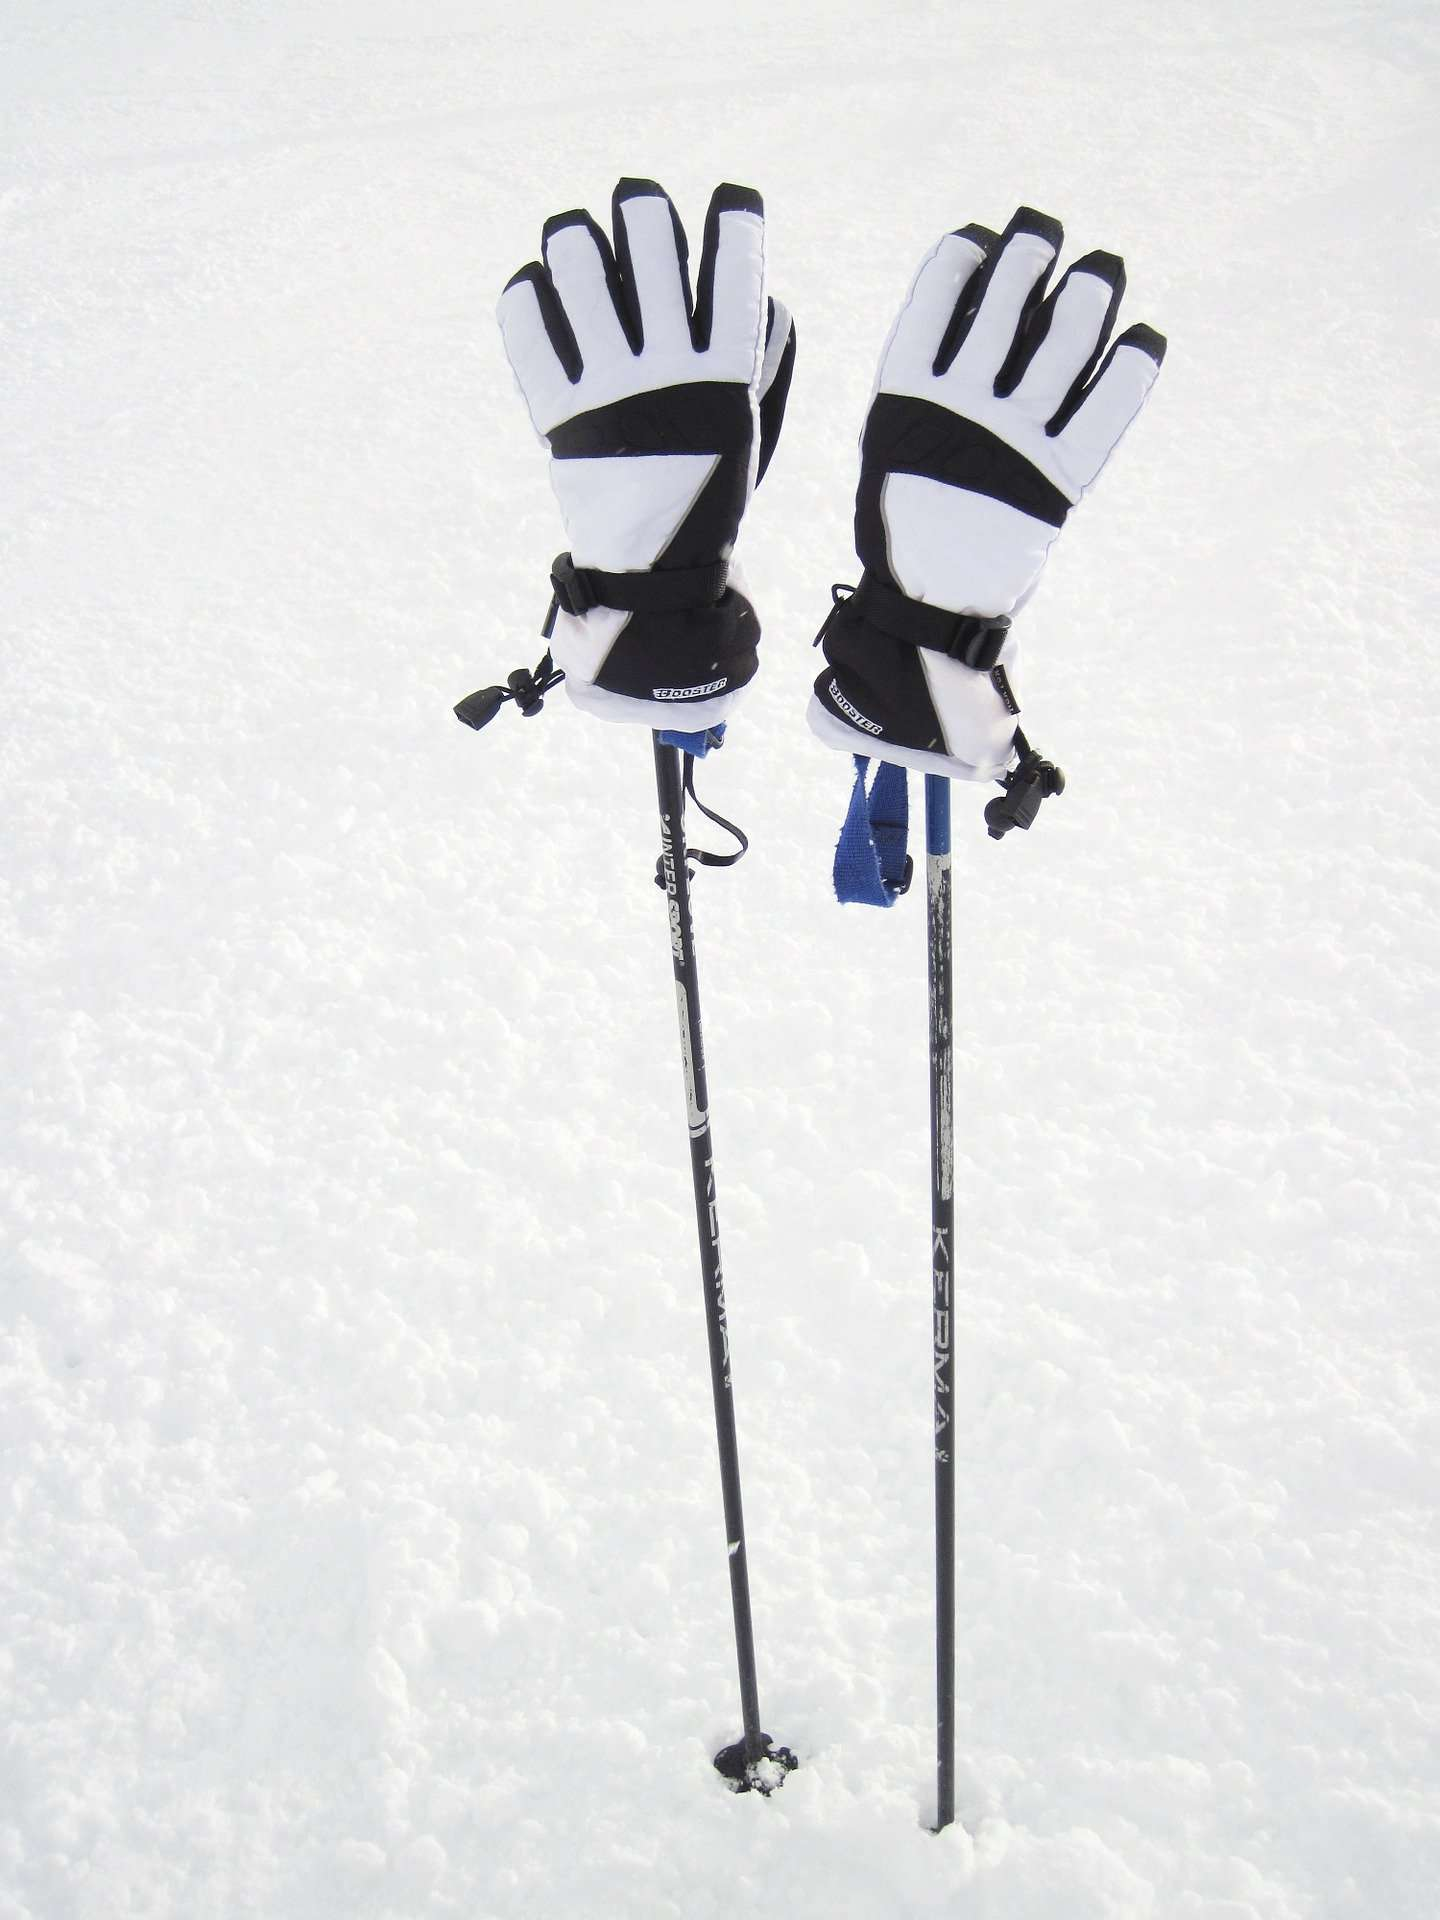 Pair of white gloves resting on ski poles